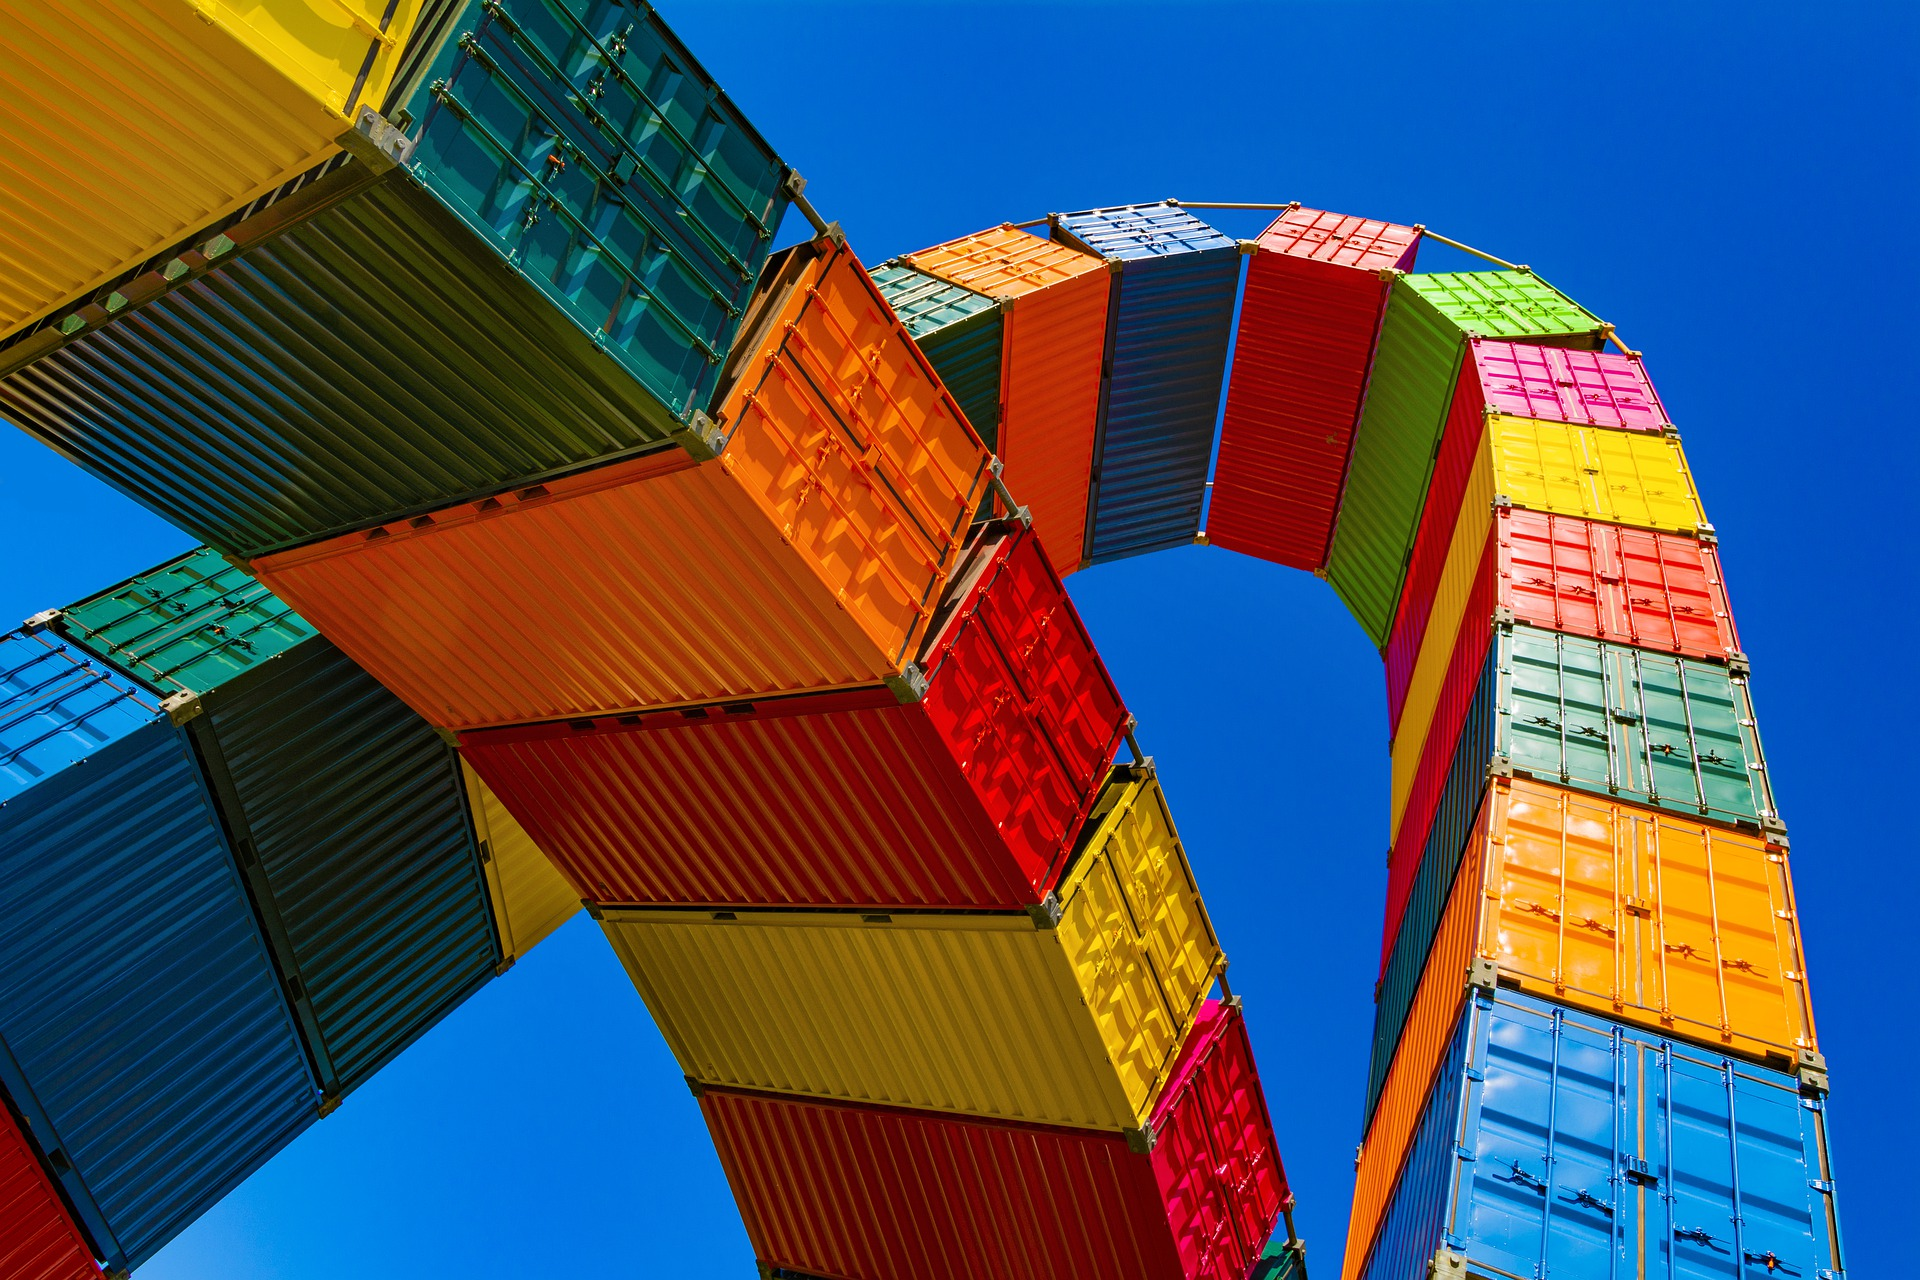 Image of shipping containers forming an arch